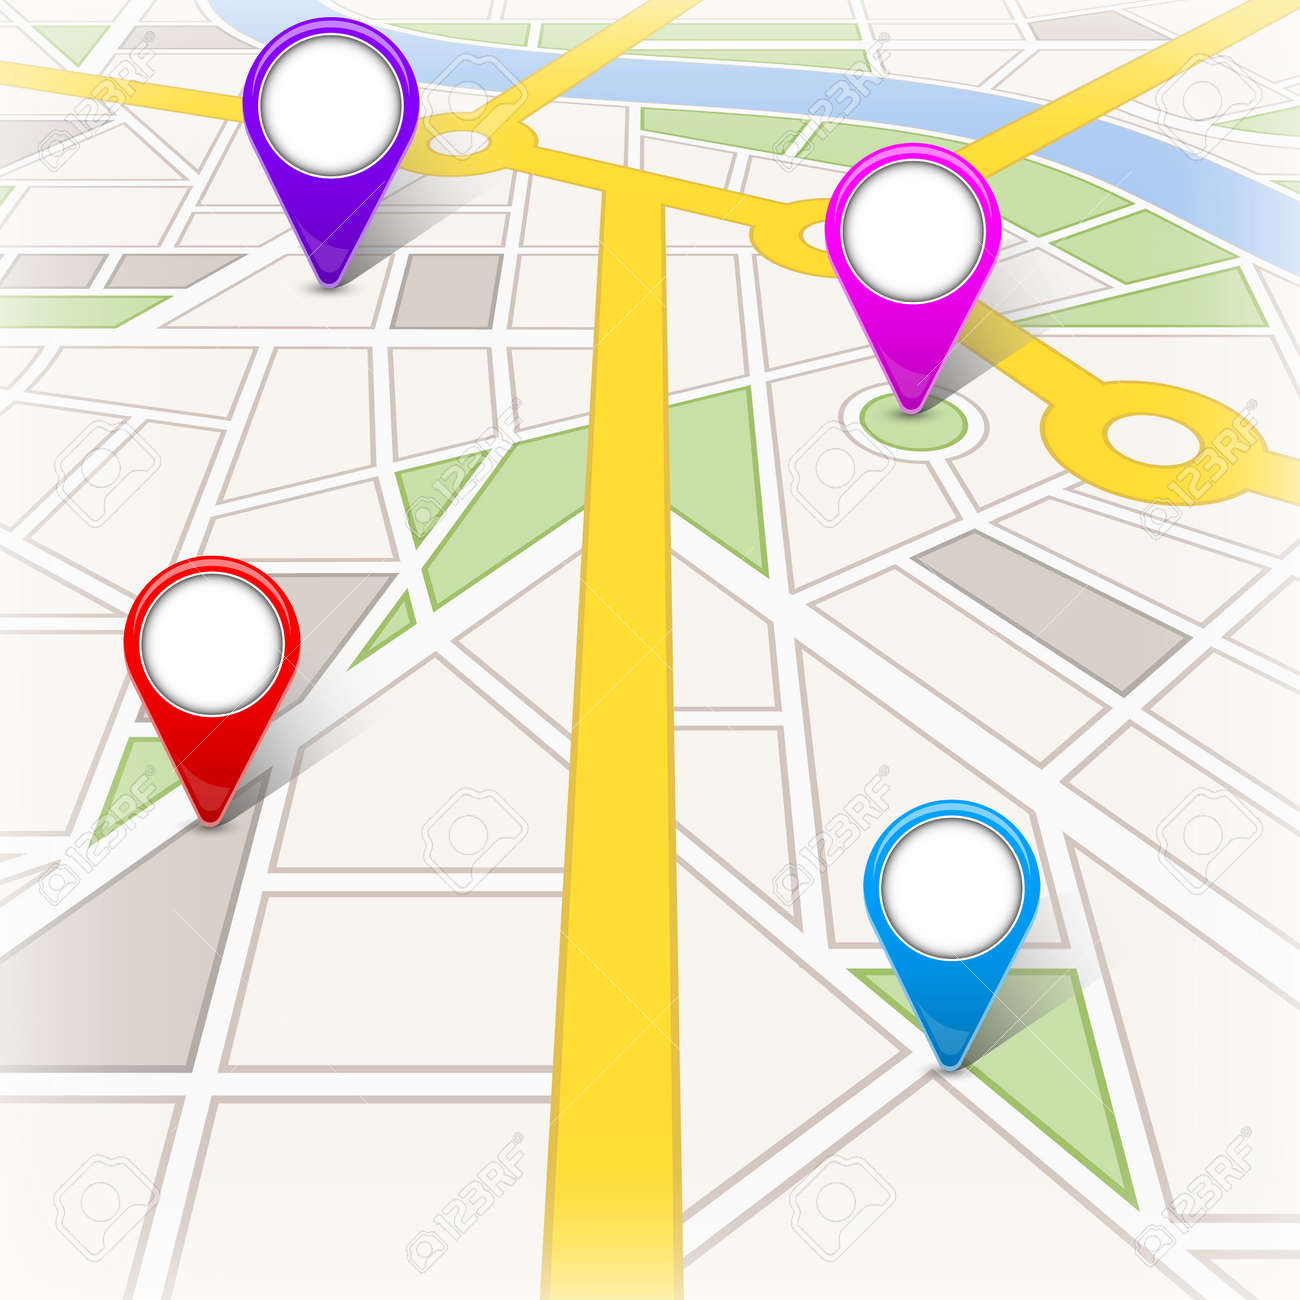 Creative illustration of map city. Street road infographic navigation with GPS pin markers and pointers. Art design. City route and infrastructure. Abstract concept graphic element - 121105086